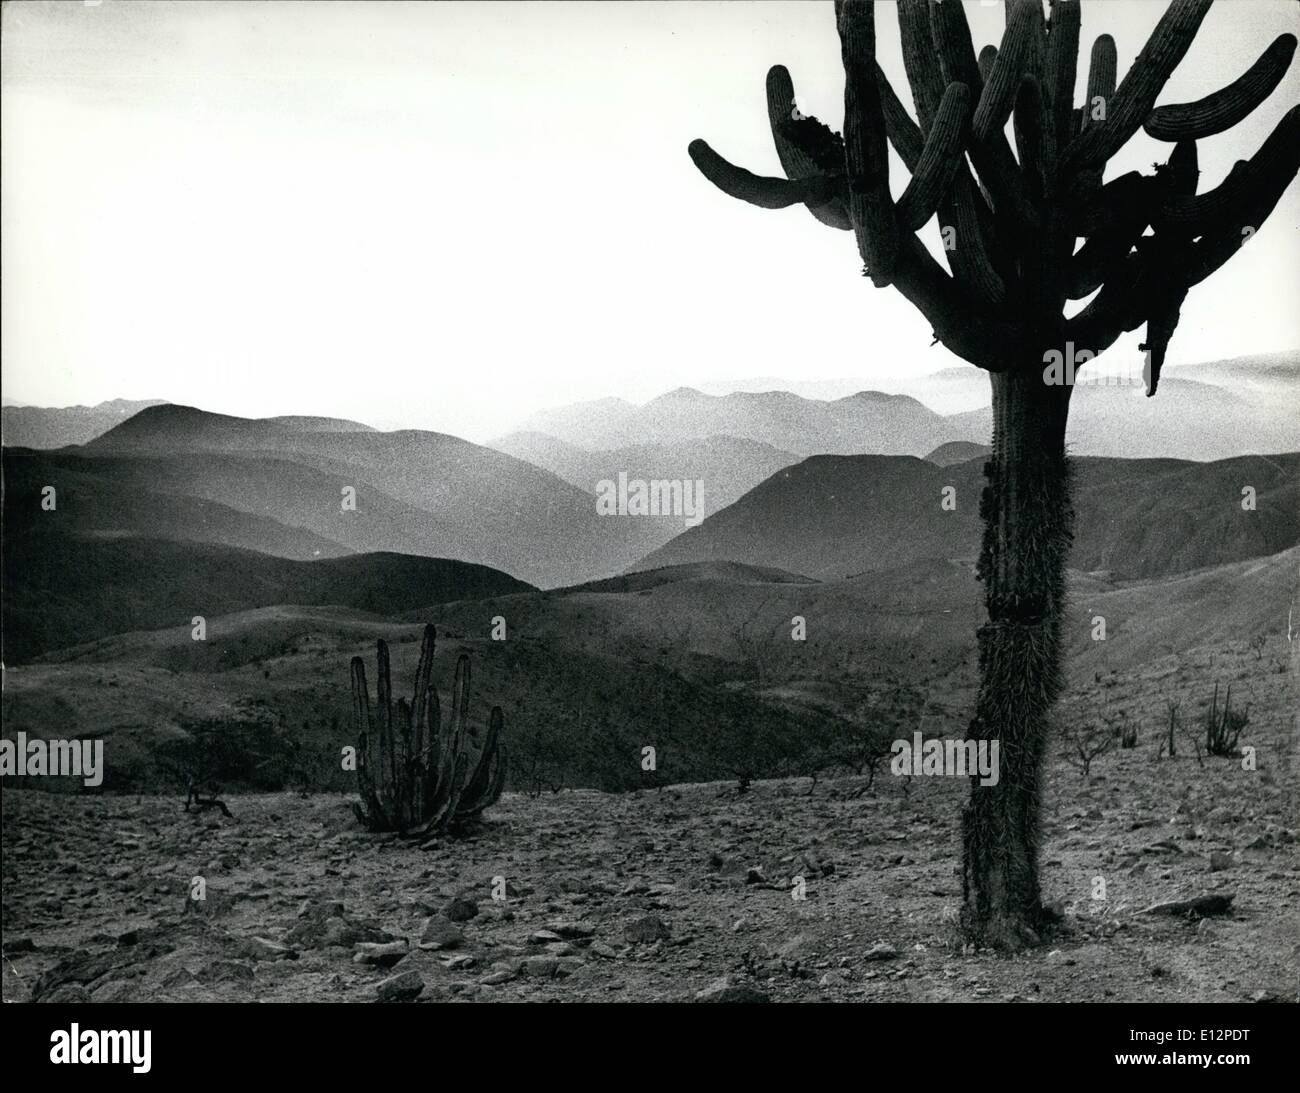 Feb. 24, 2012 - Western Andes of Peru to desert foothills - talon at a height of 8,000 ft. Cacius is typical of this region. - Stock Image